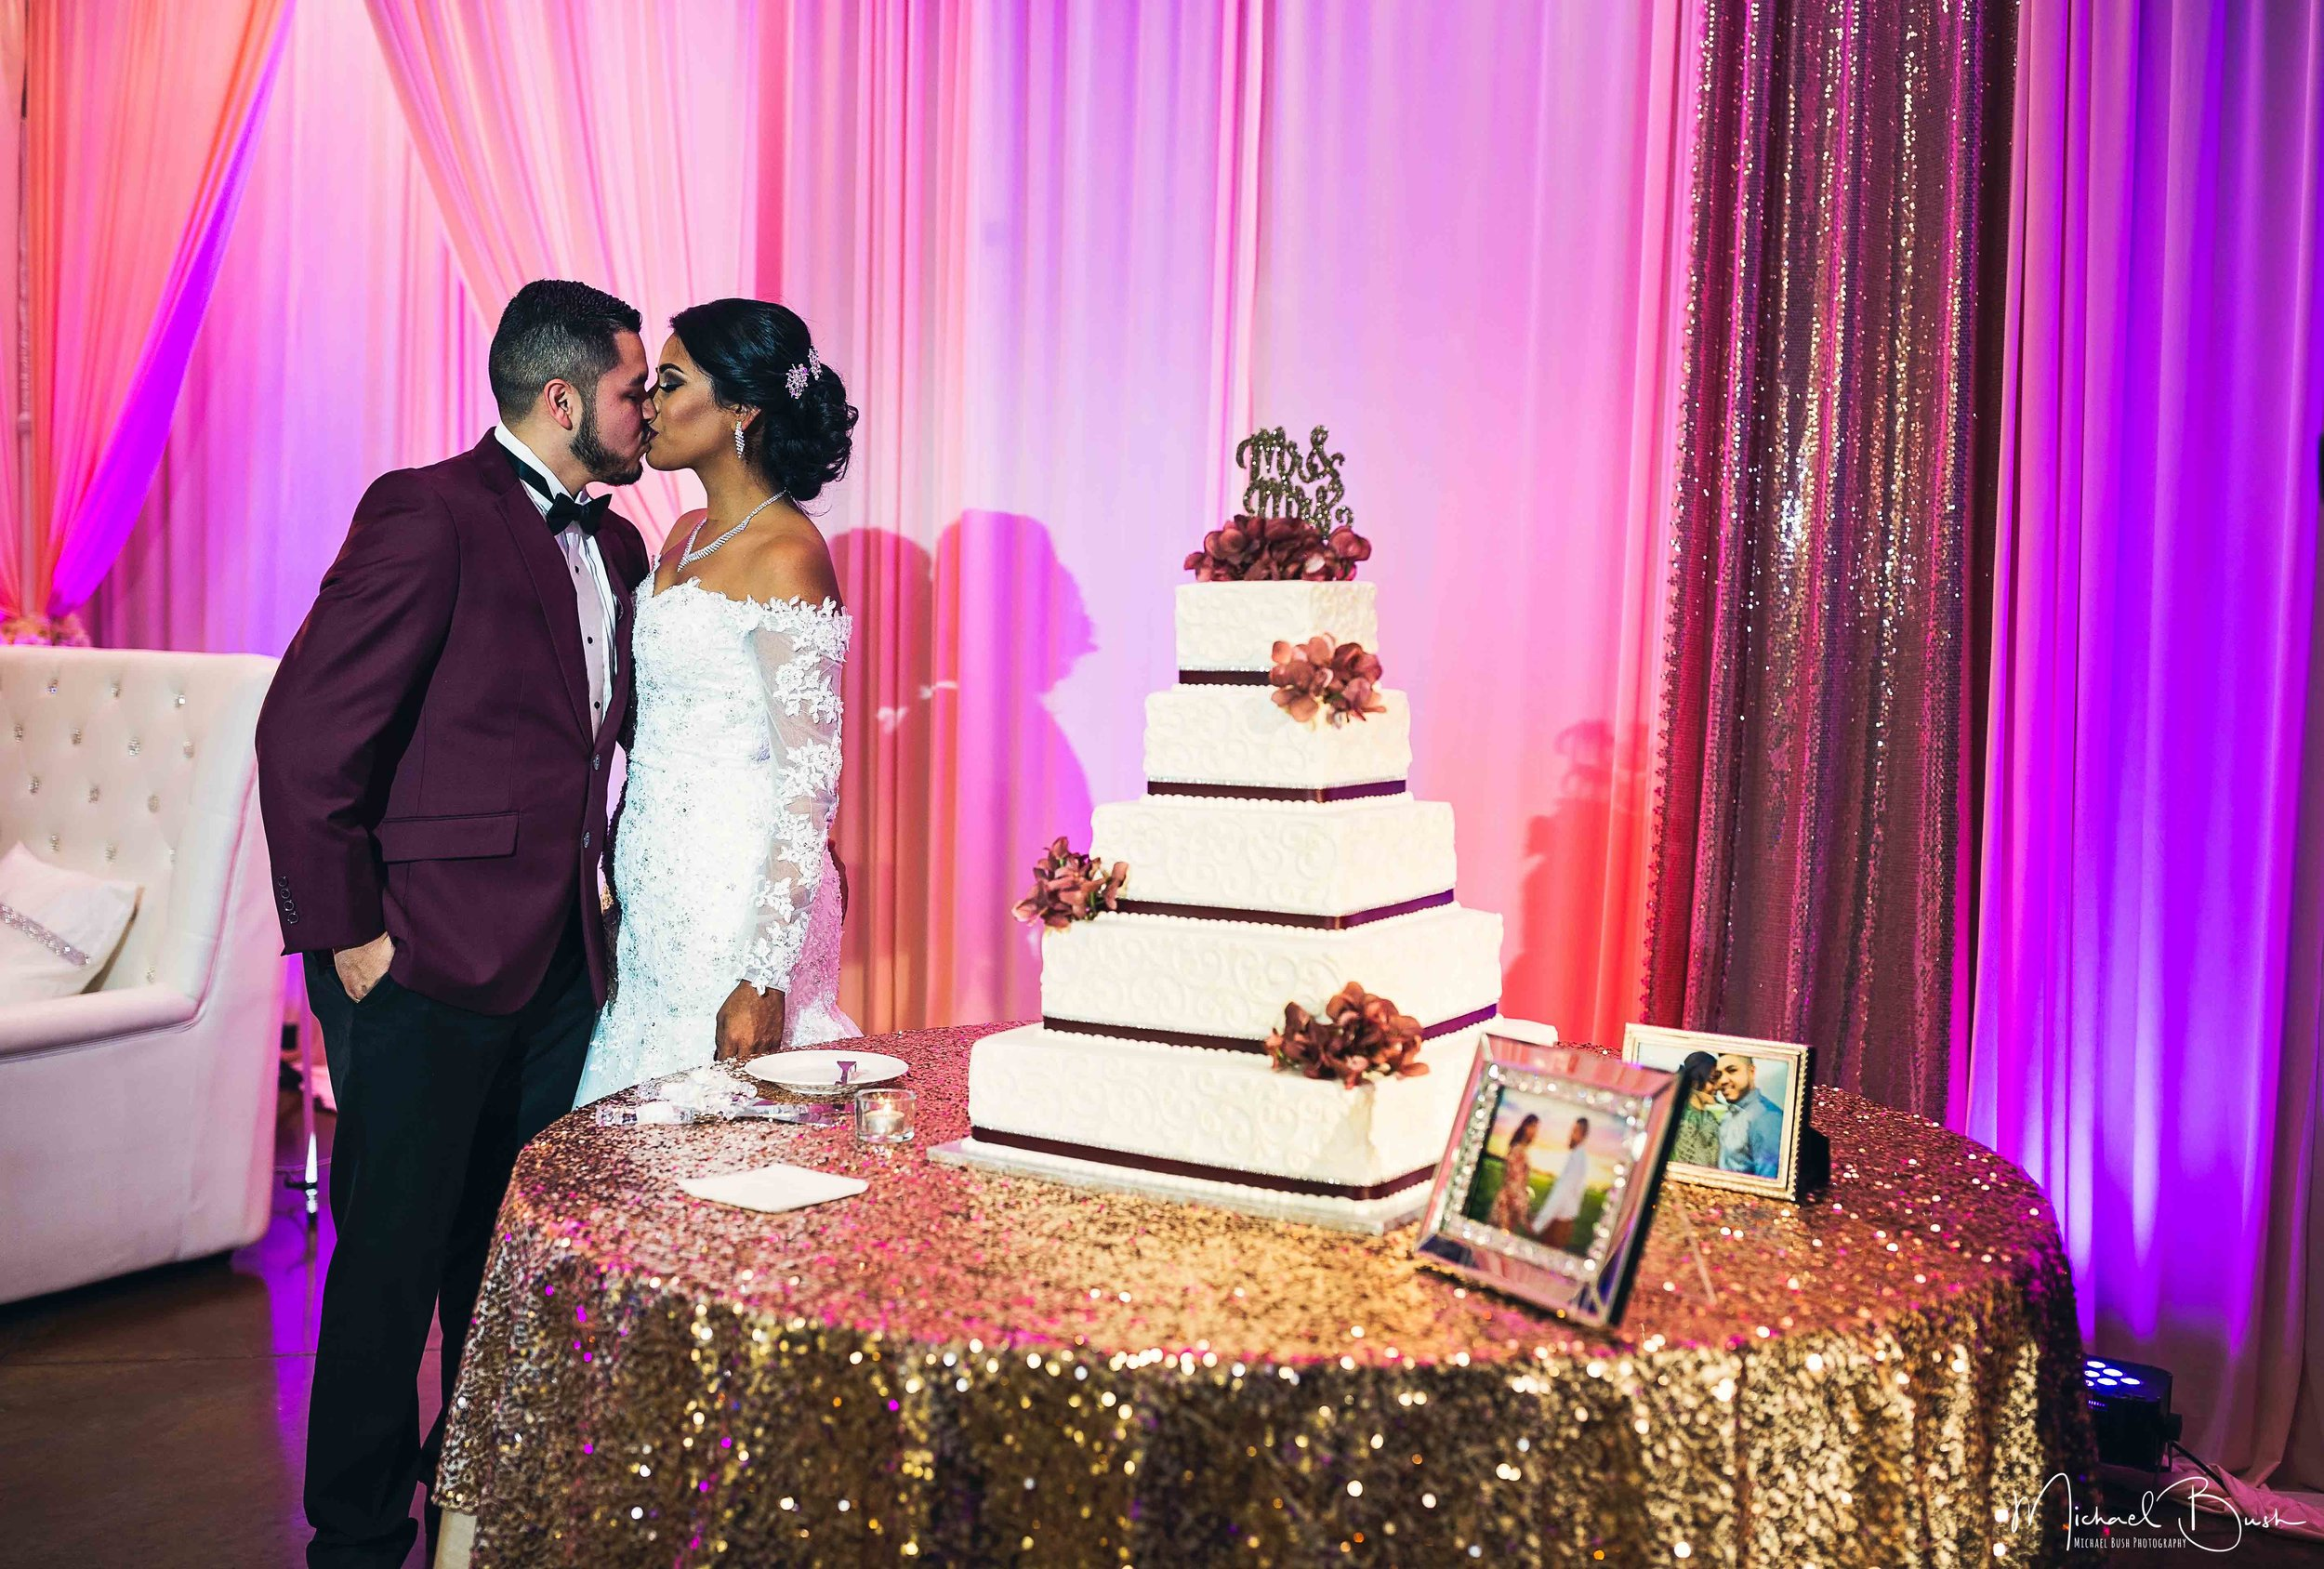 Wedding-Reception-Detials-Fort-Worth-Venue-cake-kiss.jpg